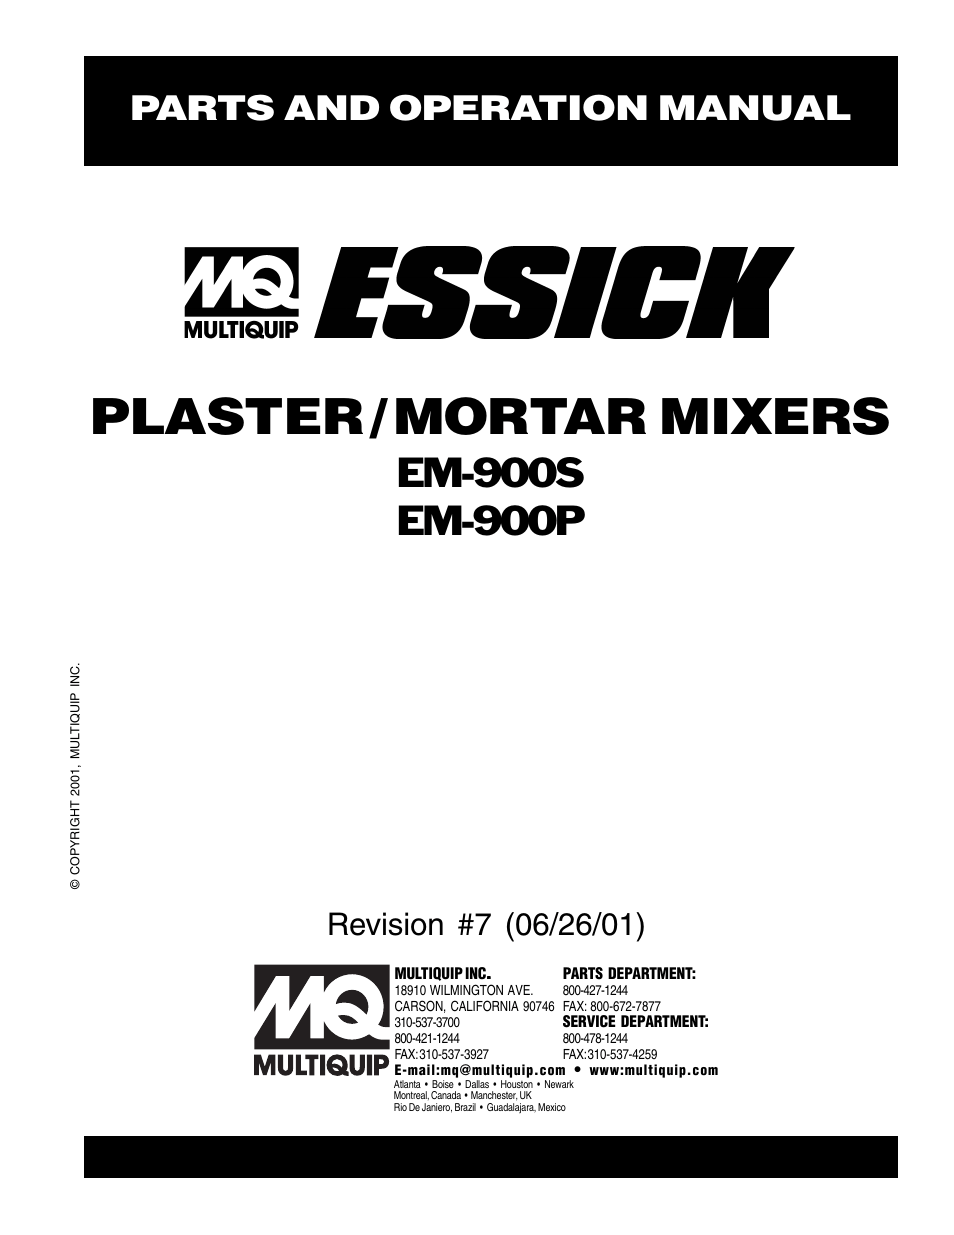 Multiquip ESSICK PLASTER/MORTAR MIXERS EM-900S User Manual